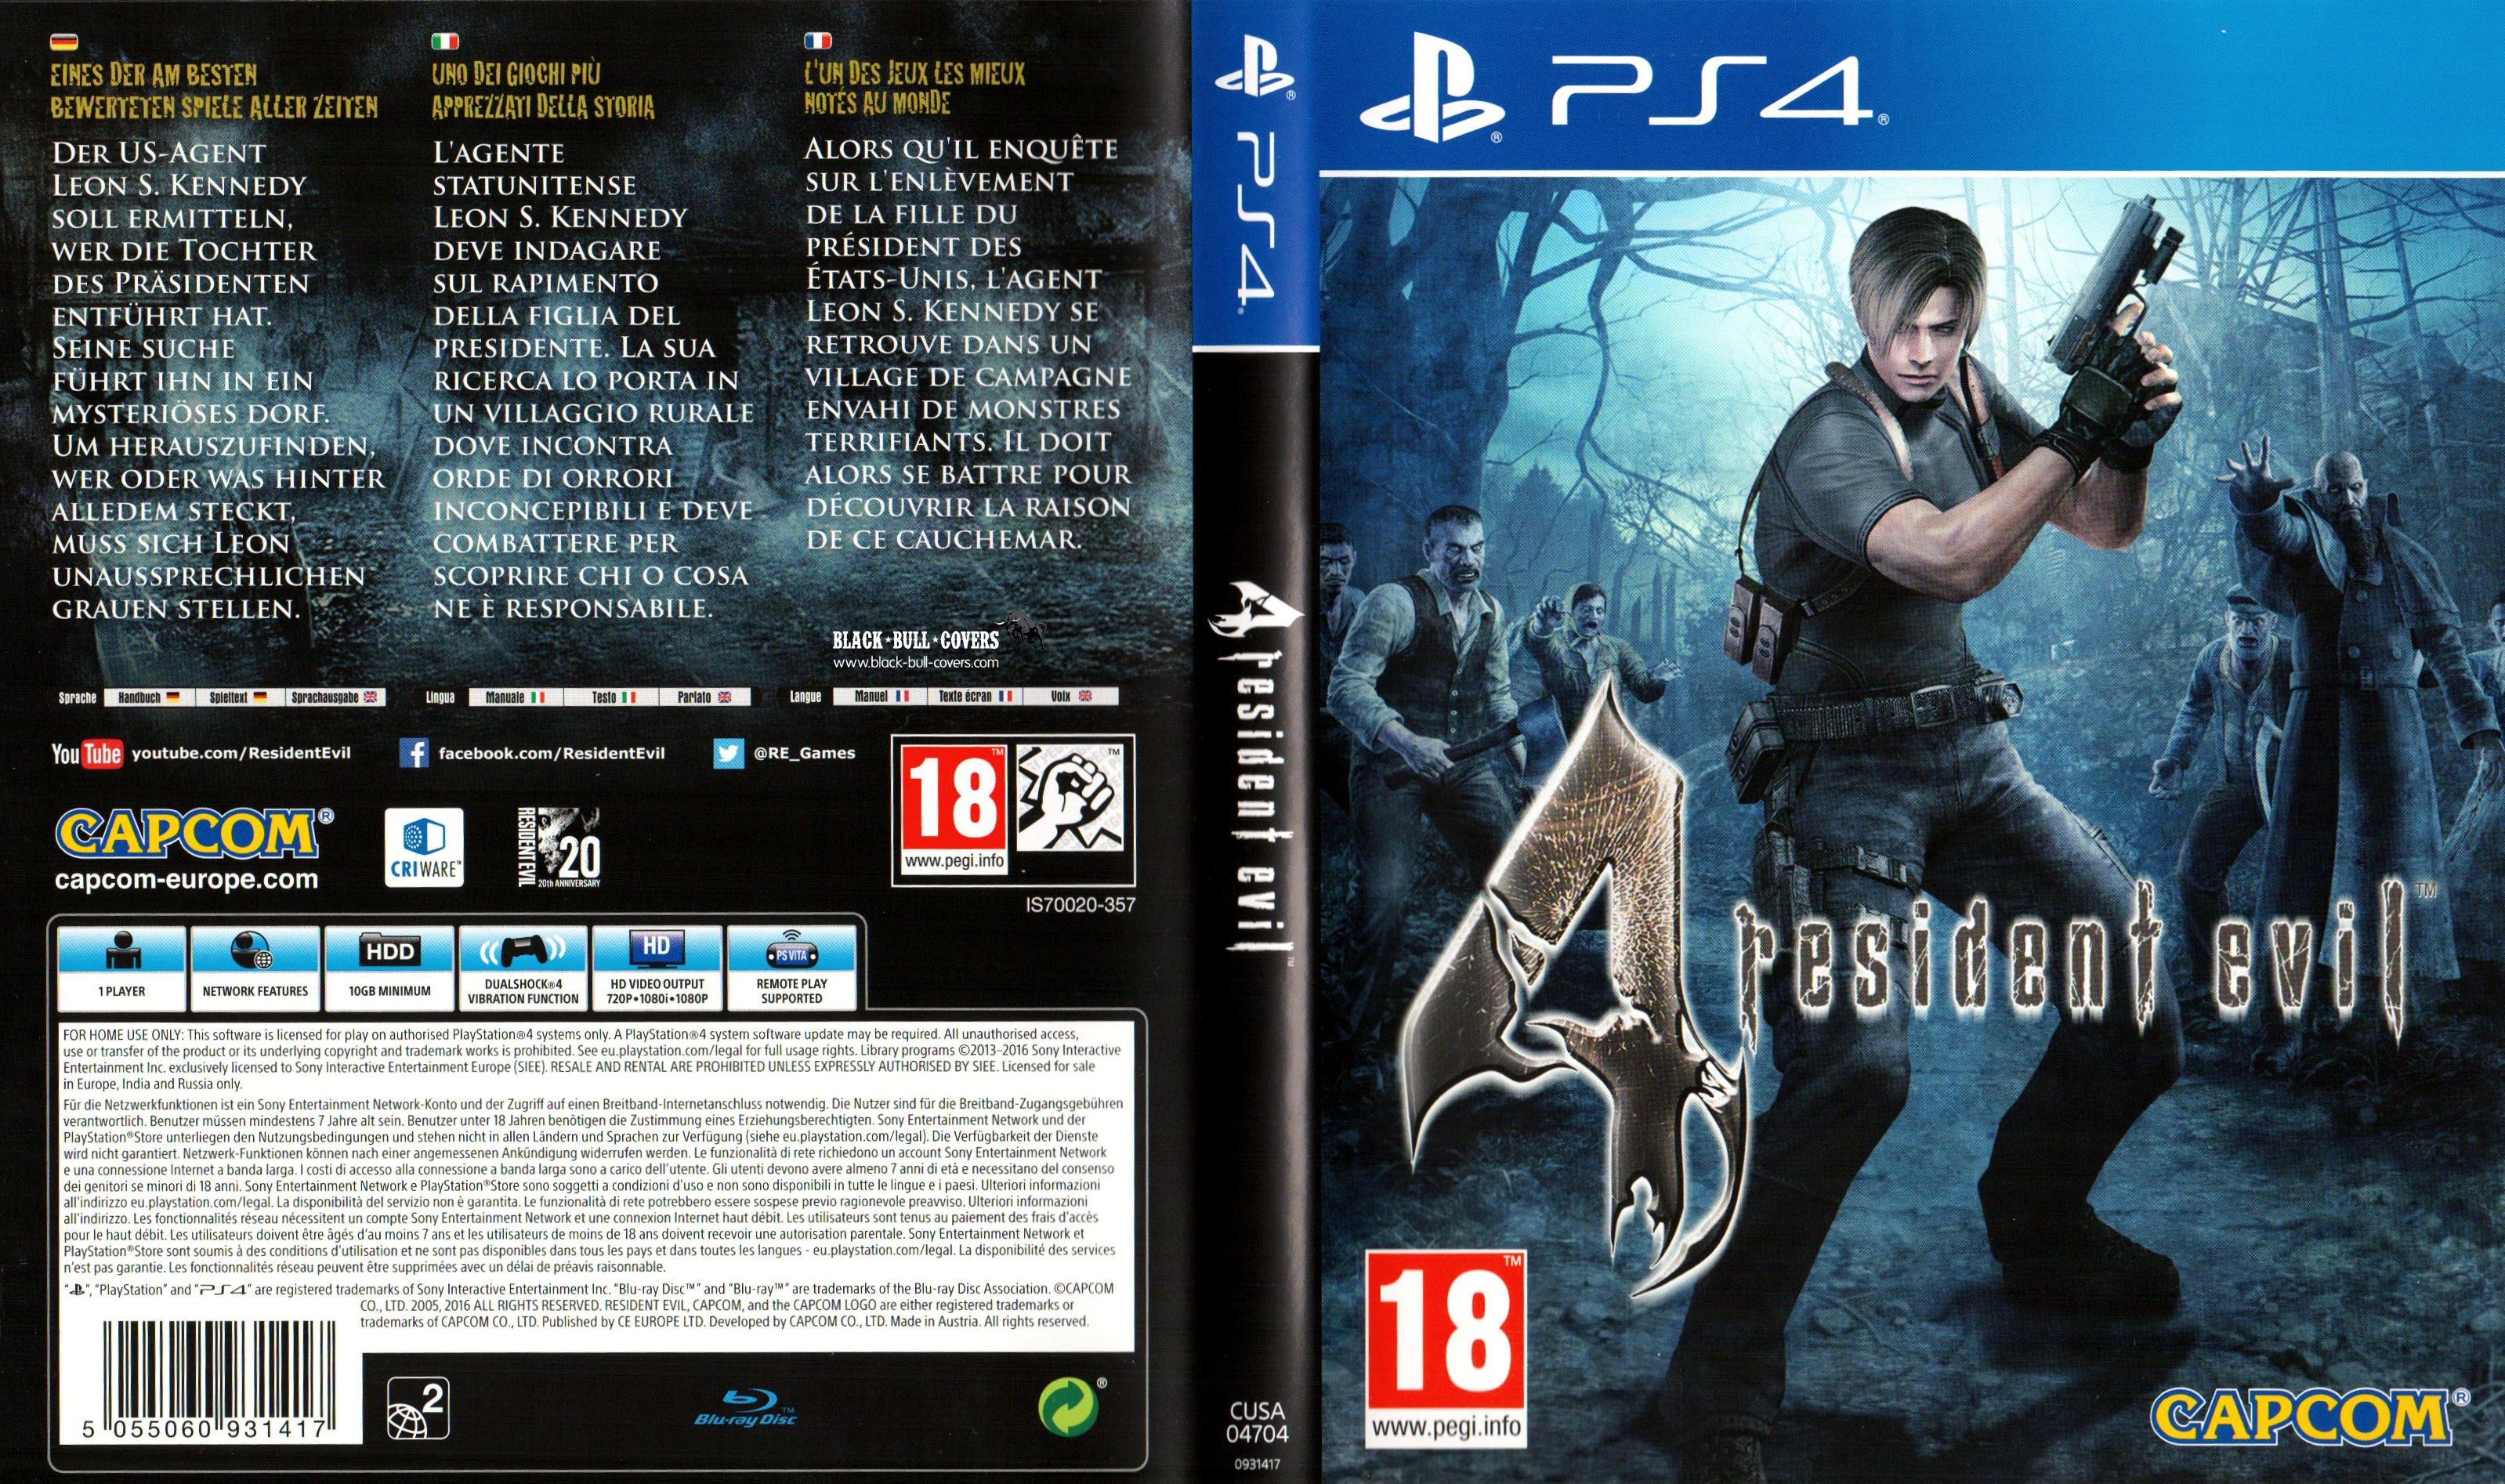 Resident Evil 4 Playstation 4 Covers Cover Century Over